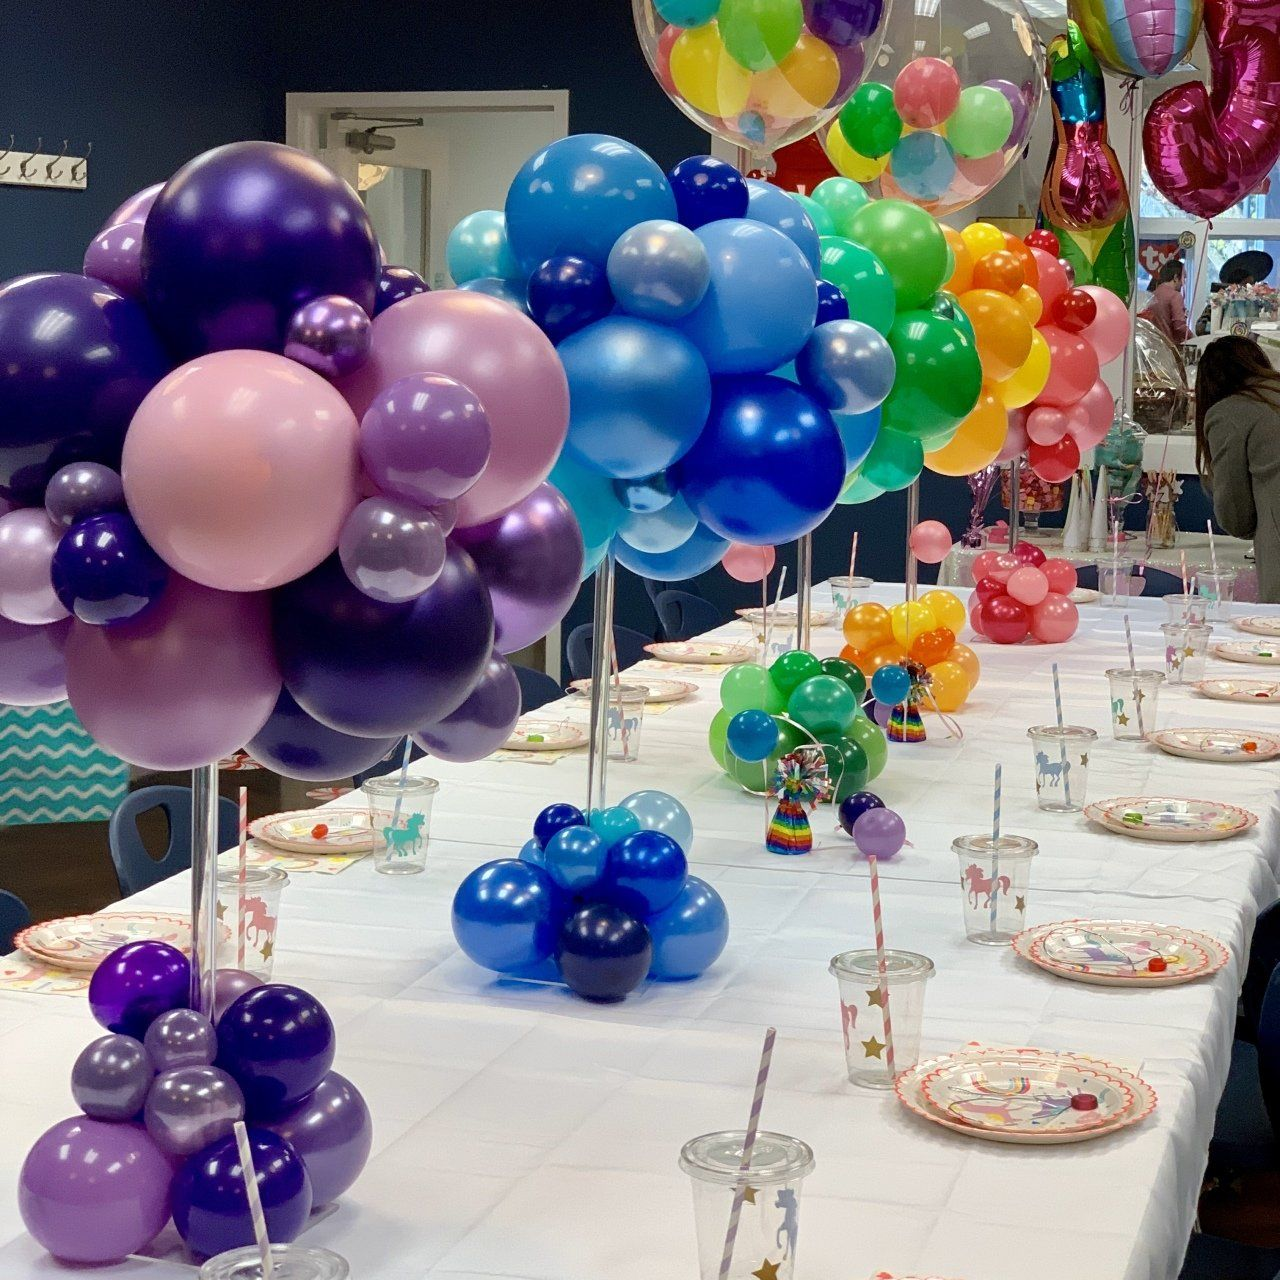 Pin By Krysti Mcmillion Harrigan On Birthdays Homemade Party Decorations Birthday Parties Birthday Decorations